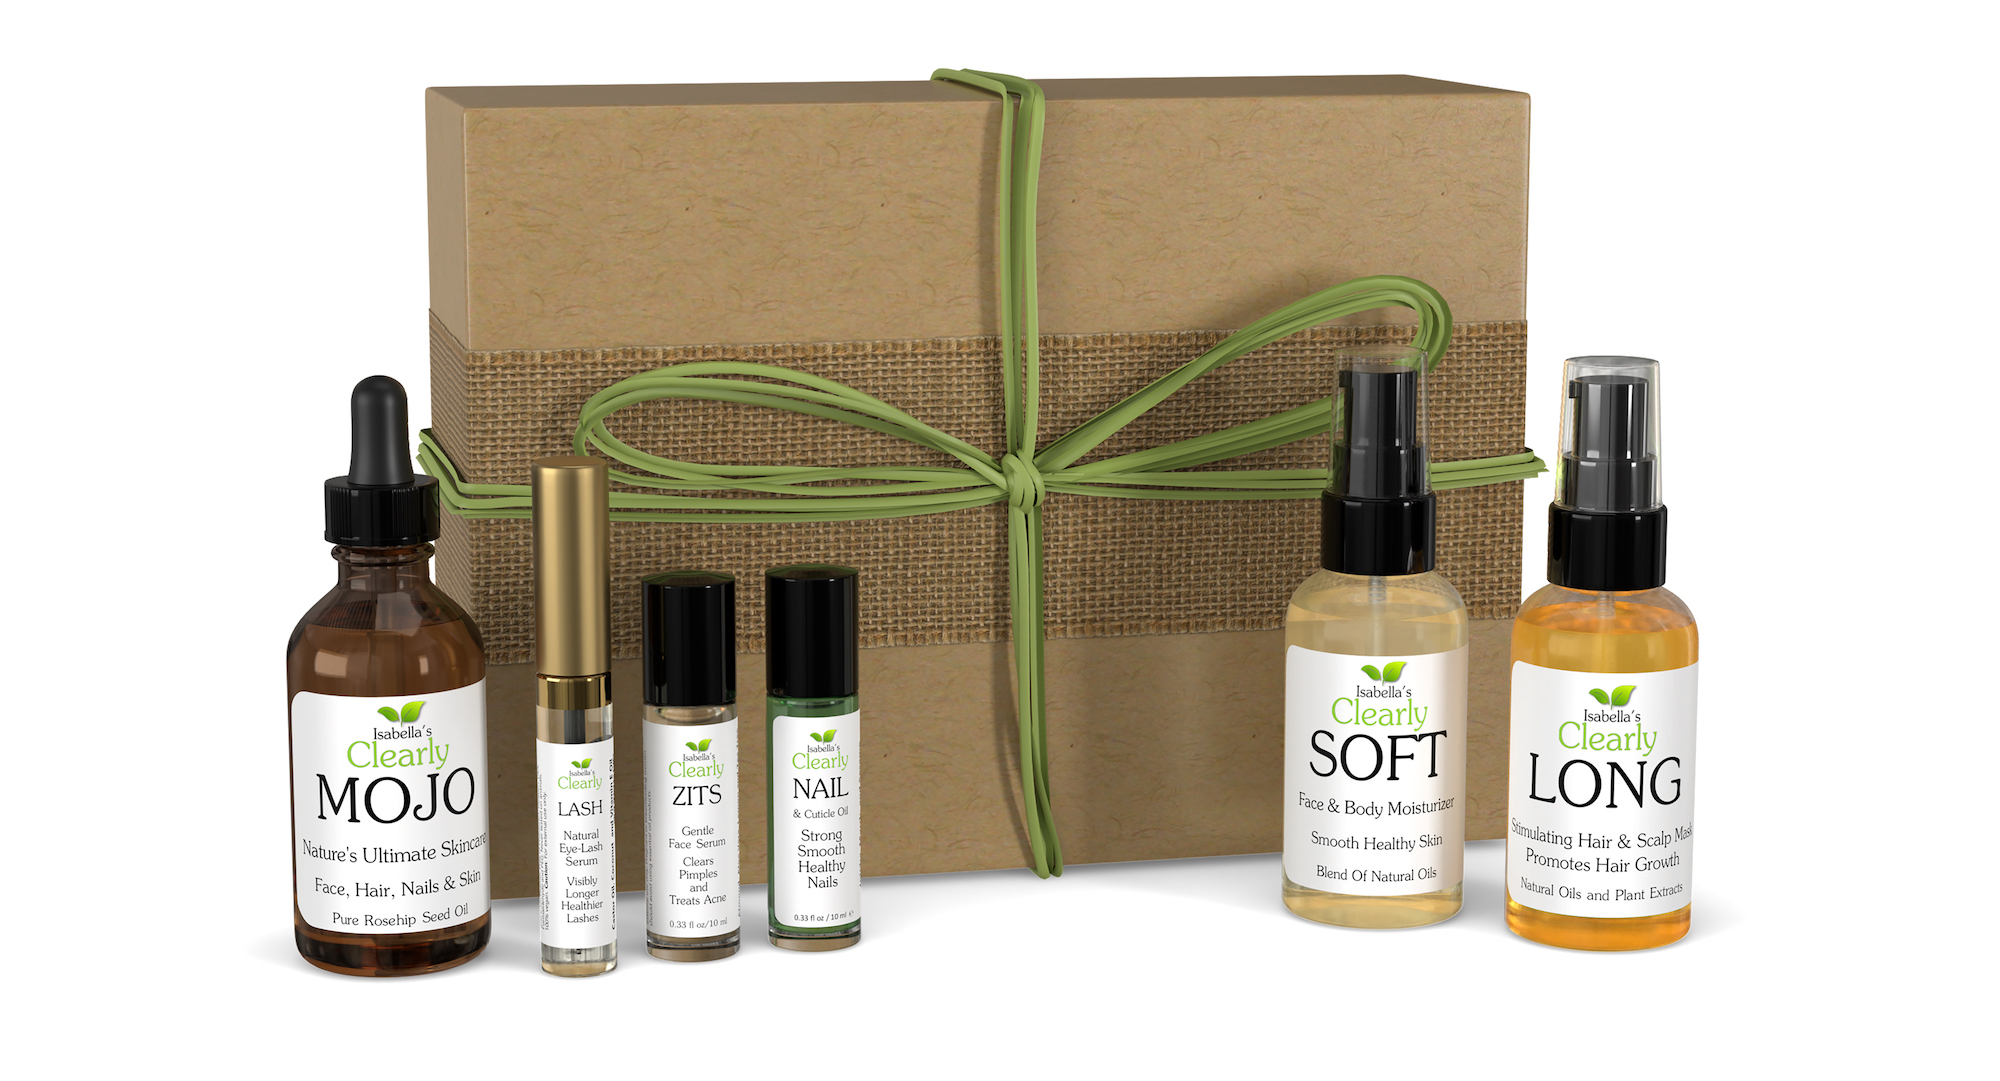 Clearly TEEN Beauty Box for Skin, Hair, and Nails